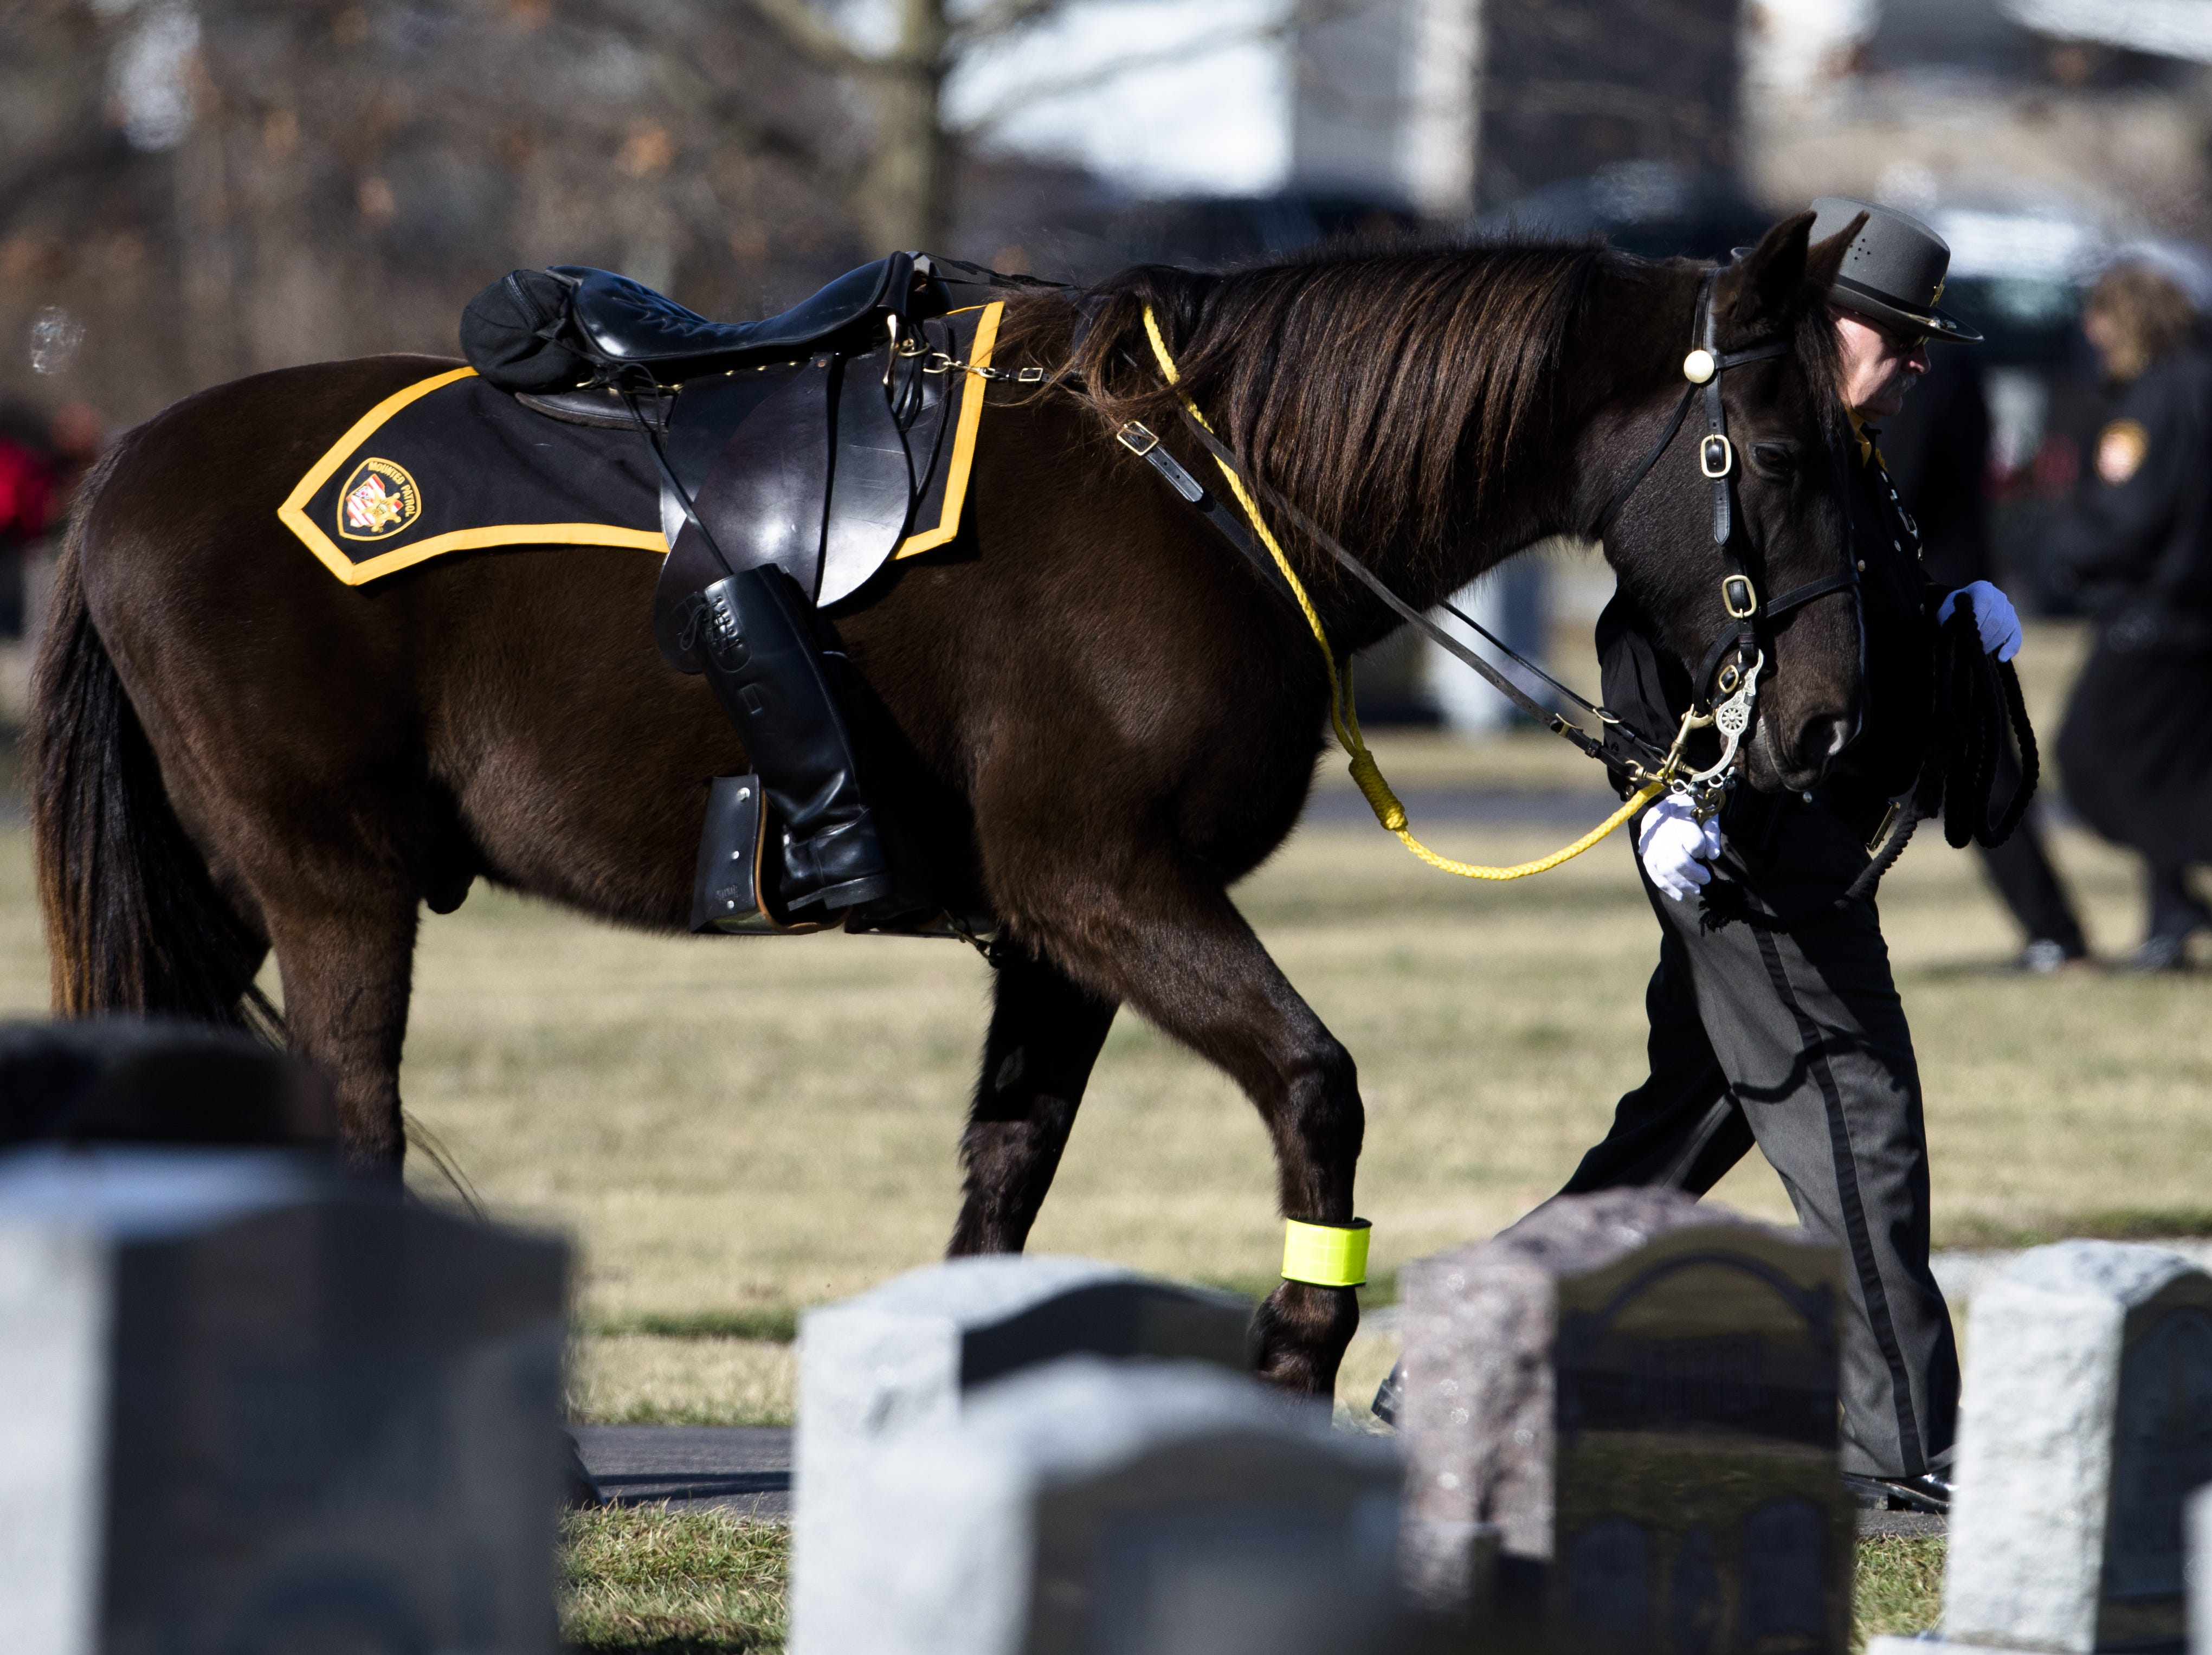 The riderless horse is led away during the burial service of Detective Bill Brewer, a 20-year veteran of the Clermont County Sheriff's Office, on Friday, Feb. 8, 2019, at Pierce Township Cemetery in Cincinnati. Brewer, 42, of Pierce Township, died in the line of duty. He was shot Feb. 2 during a standoff. Deputy Brewer is survived by a wife and 5-year-old son.